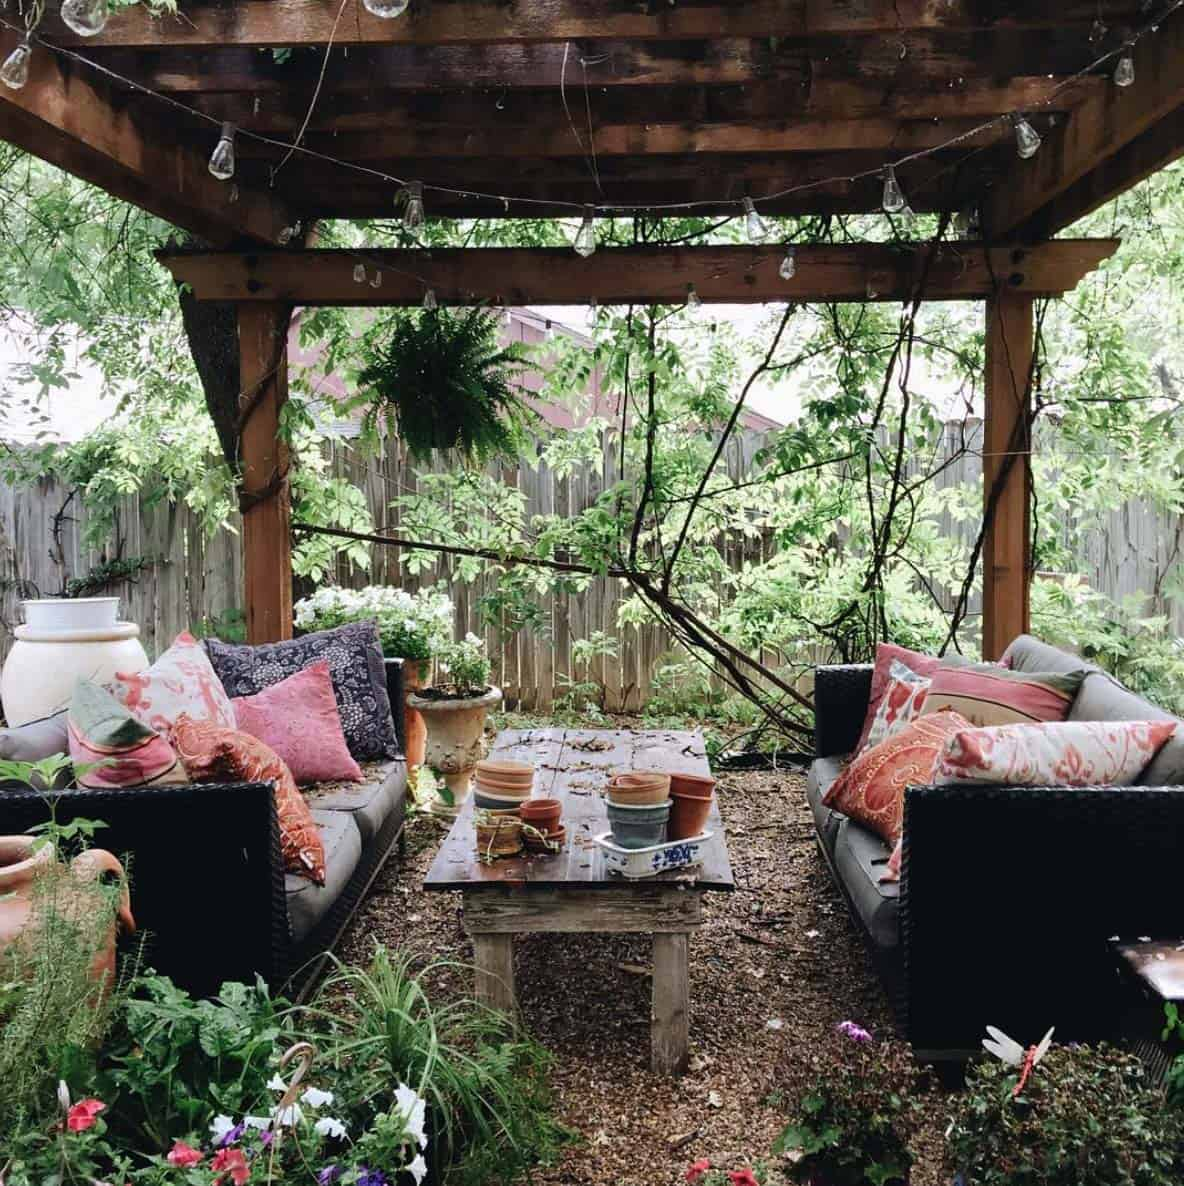 Home Design Backyard Ideas: 28 Absolutely Dreamy Bohemian Garden Design Ideas